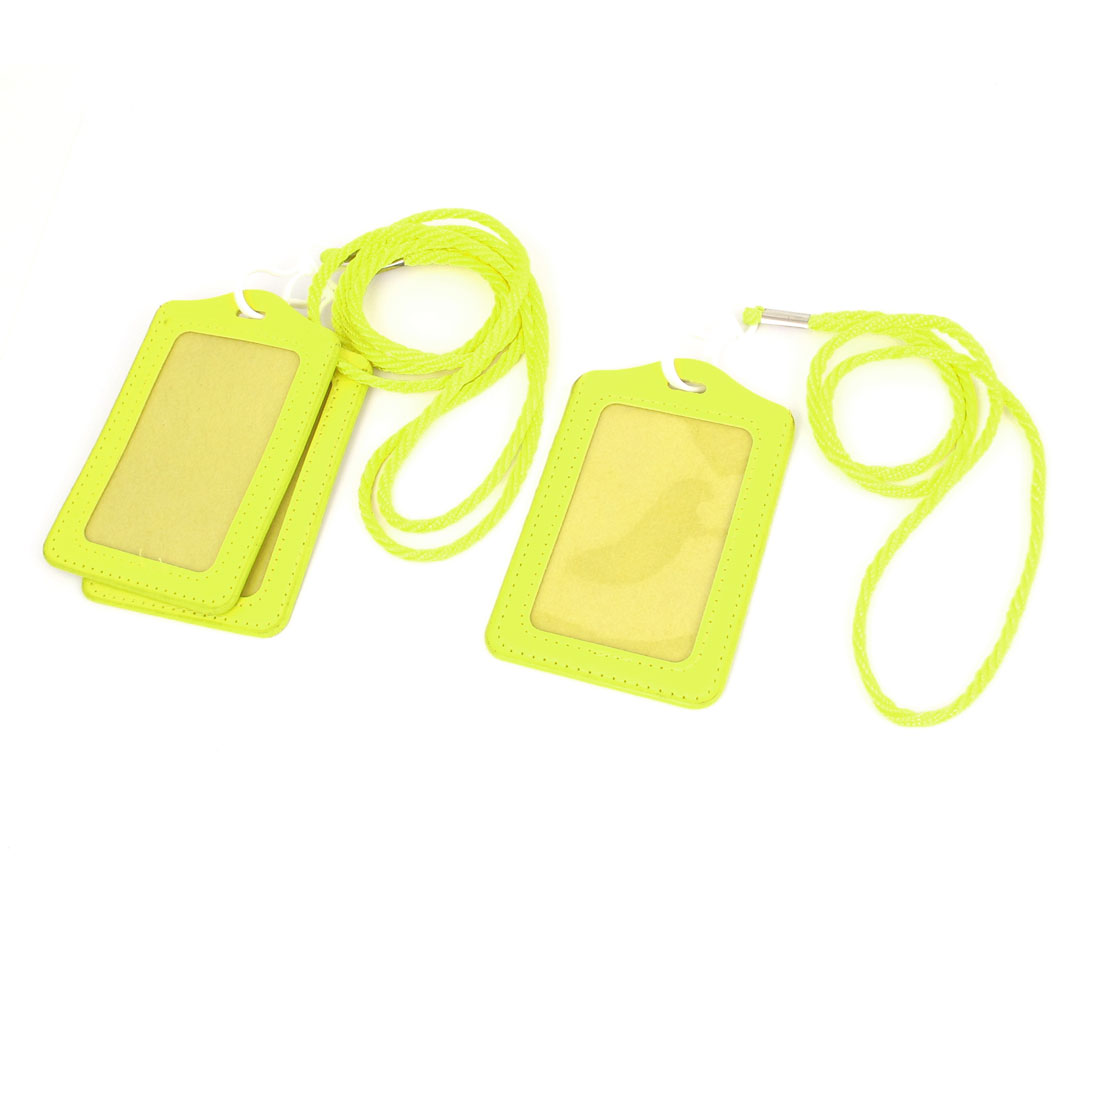 Office School Neck String Lanyard Vertical ID Card Badge Holder Yellow 3Pcs